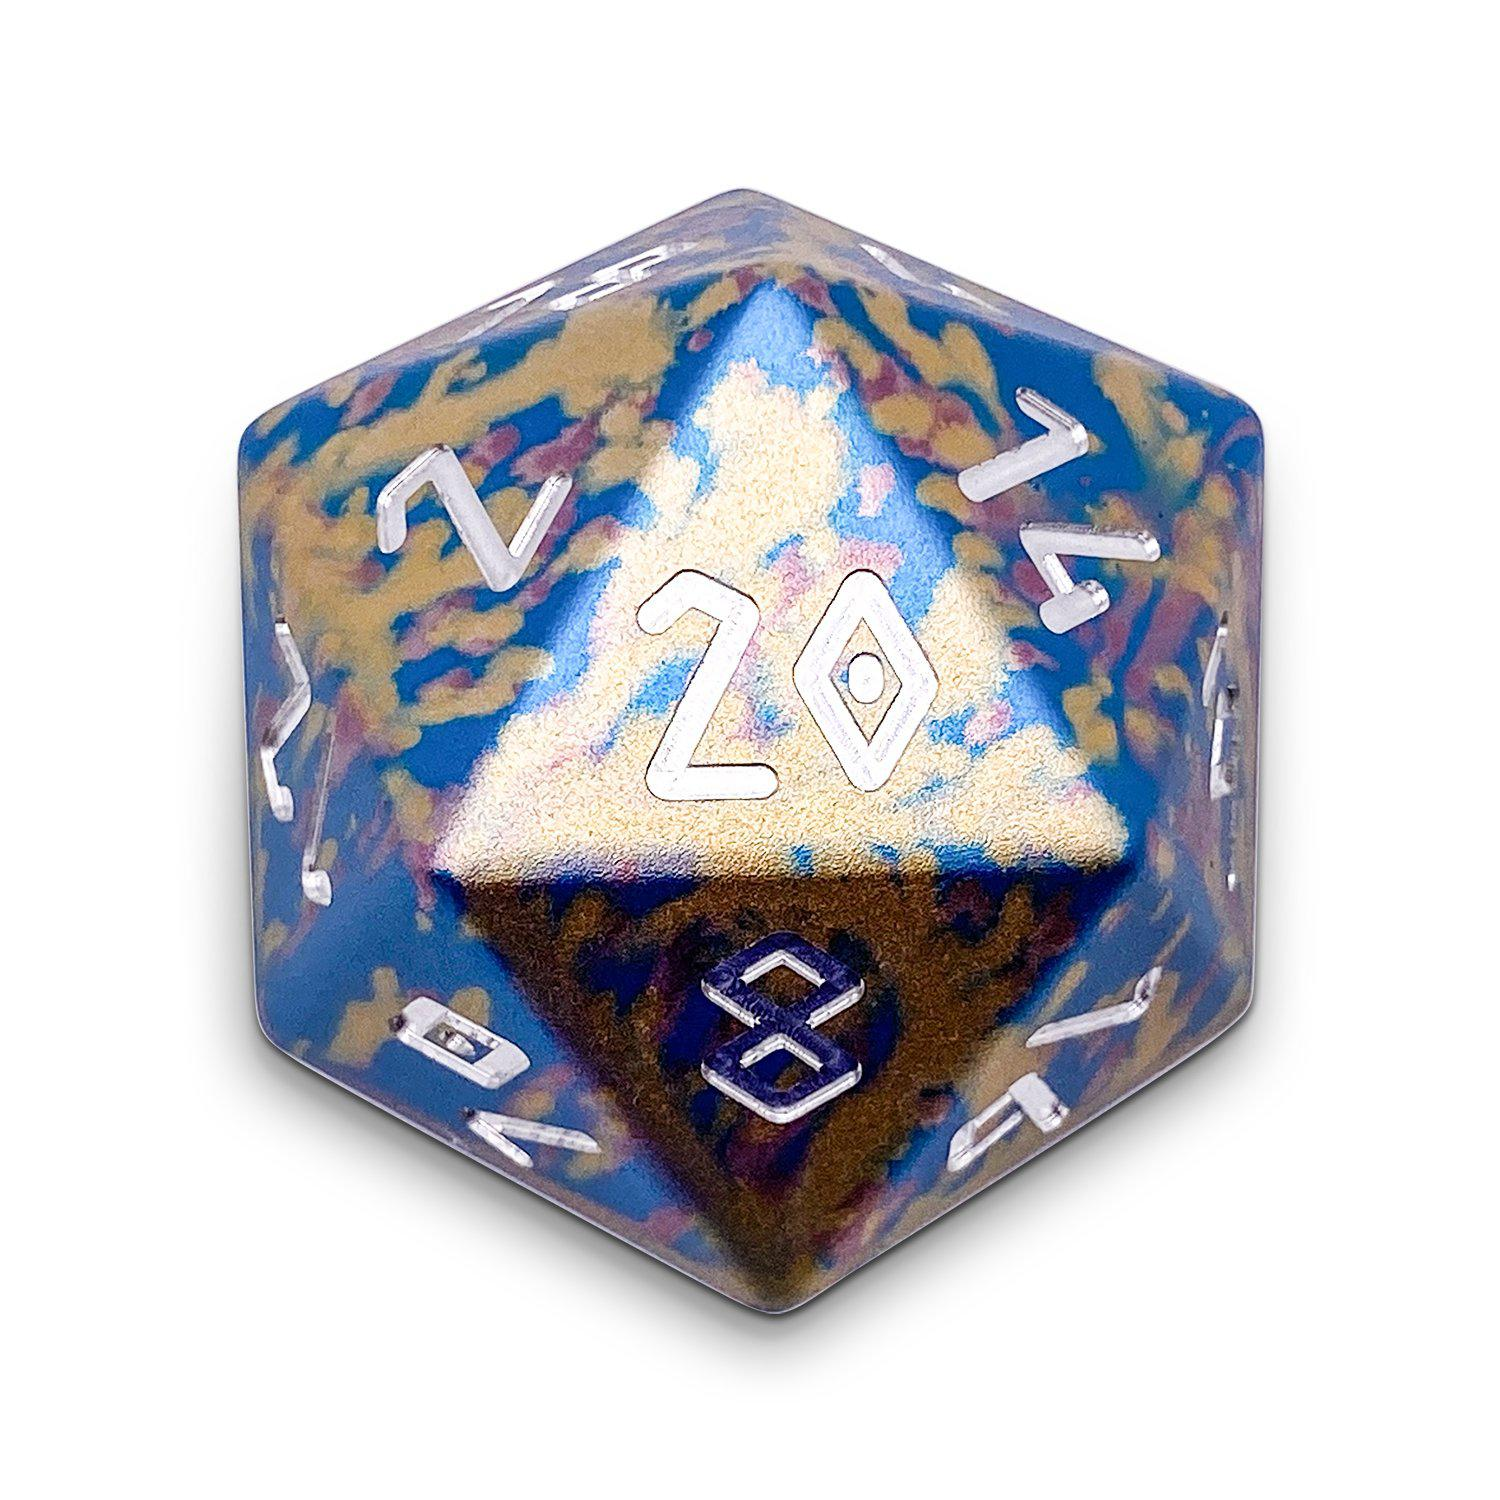 Cotton Candy - Wondrous Boulder® 55mm D20 6063 Aircraft Grade Aluminum Metal Die